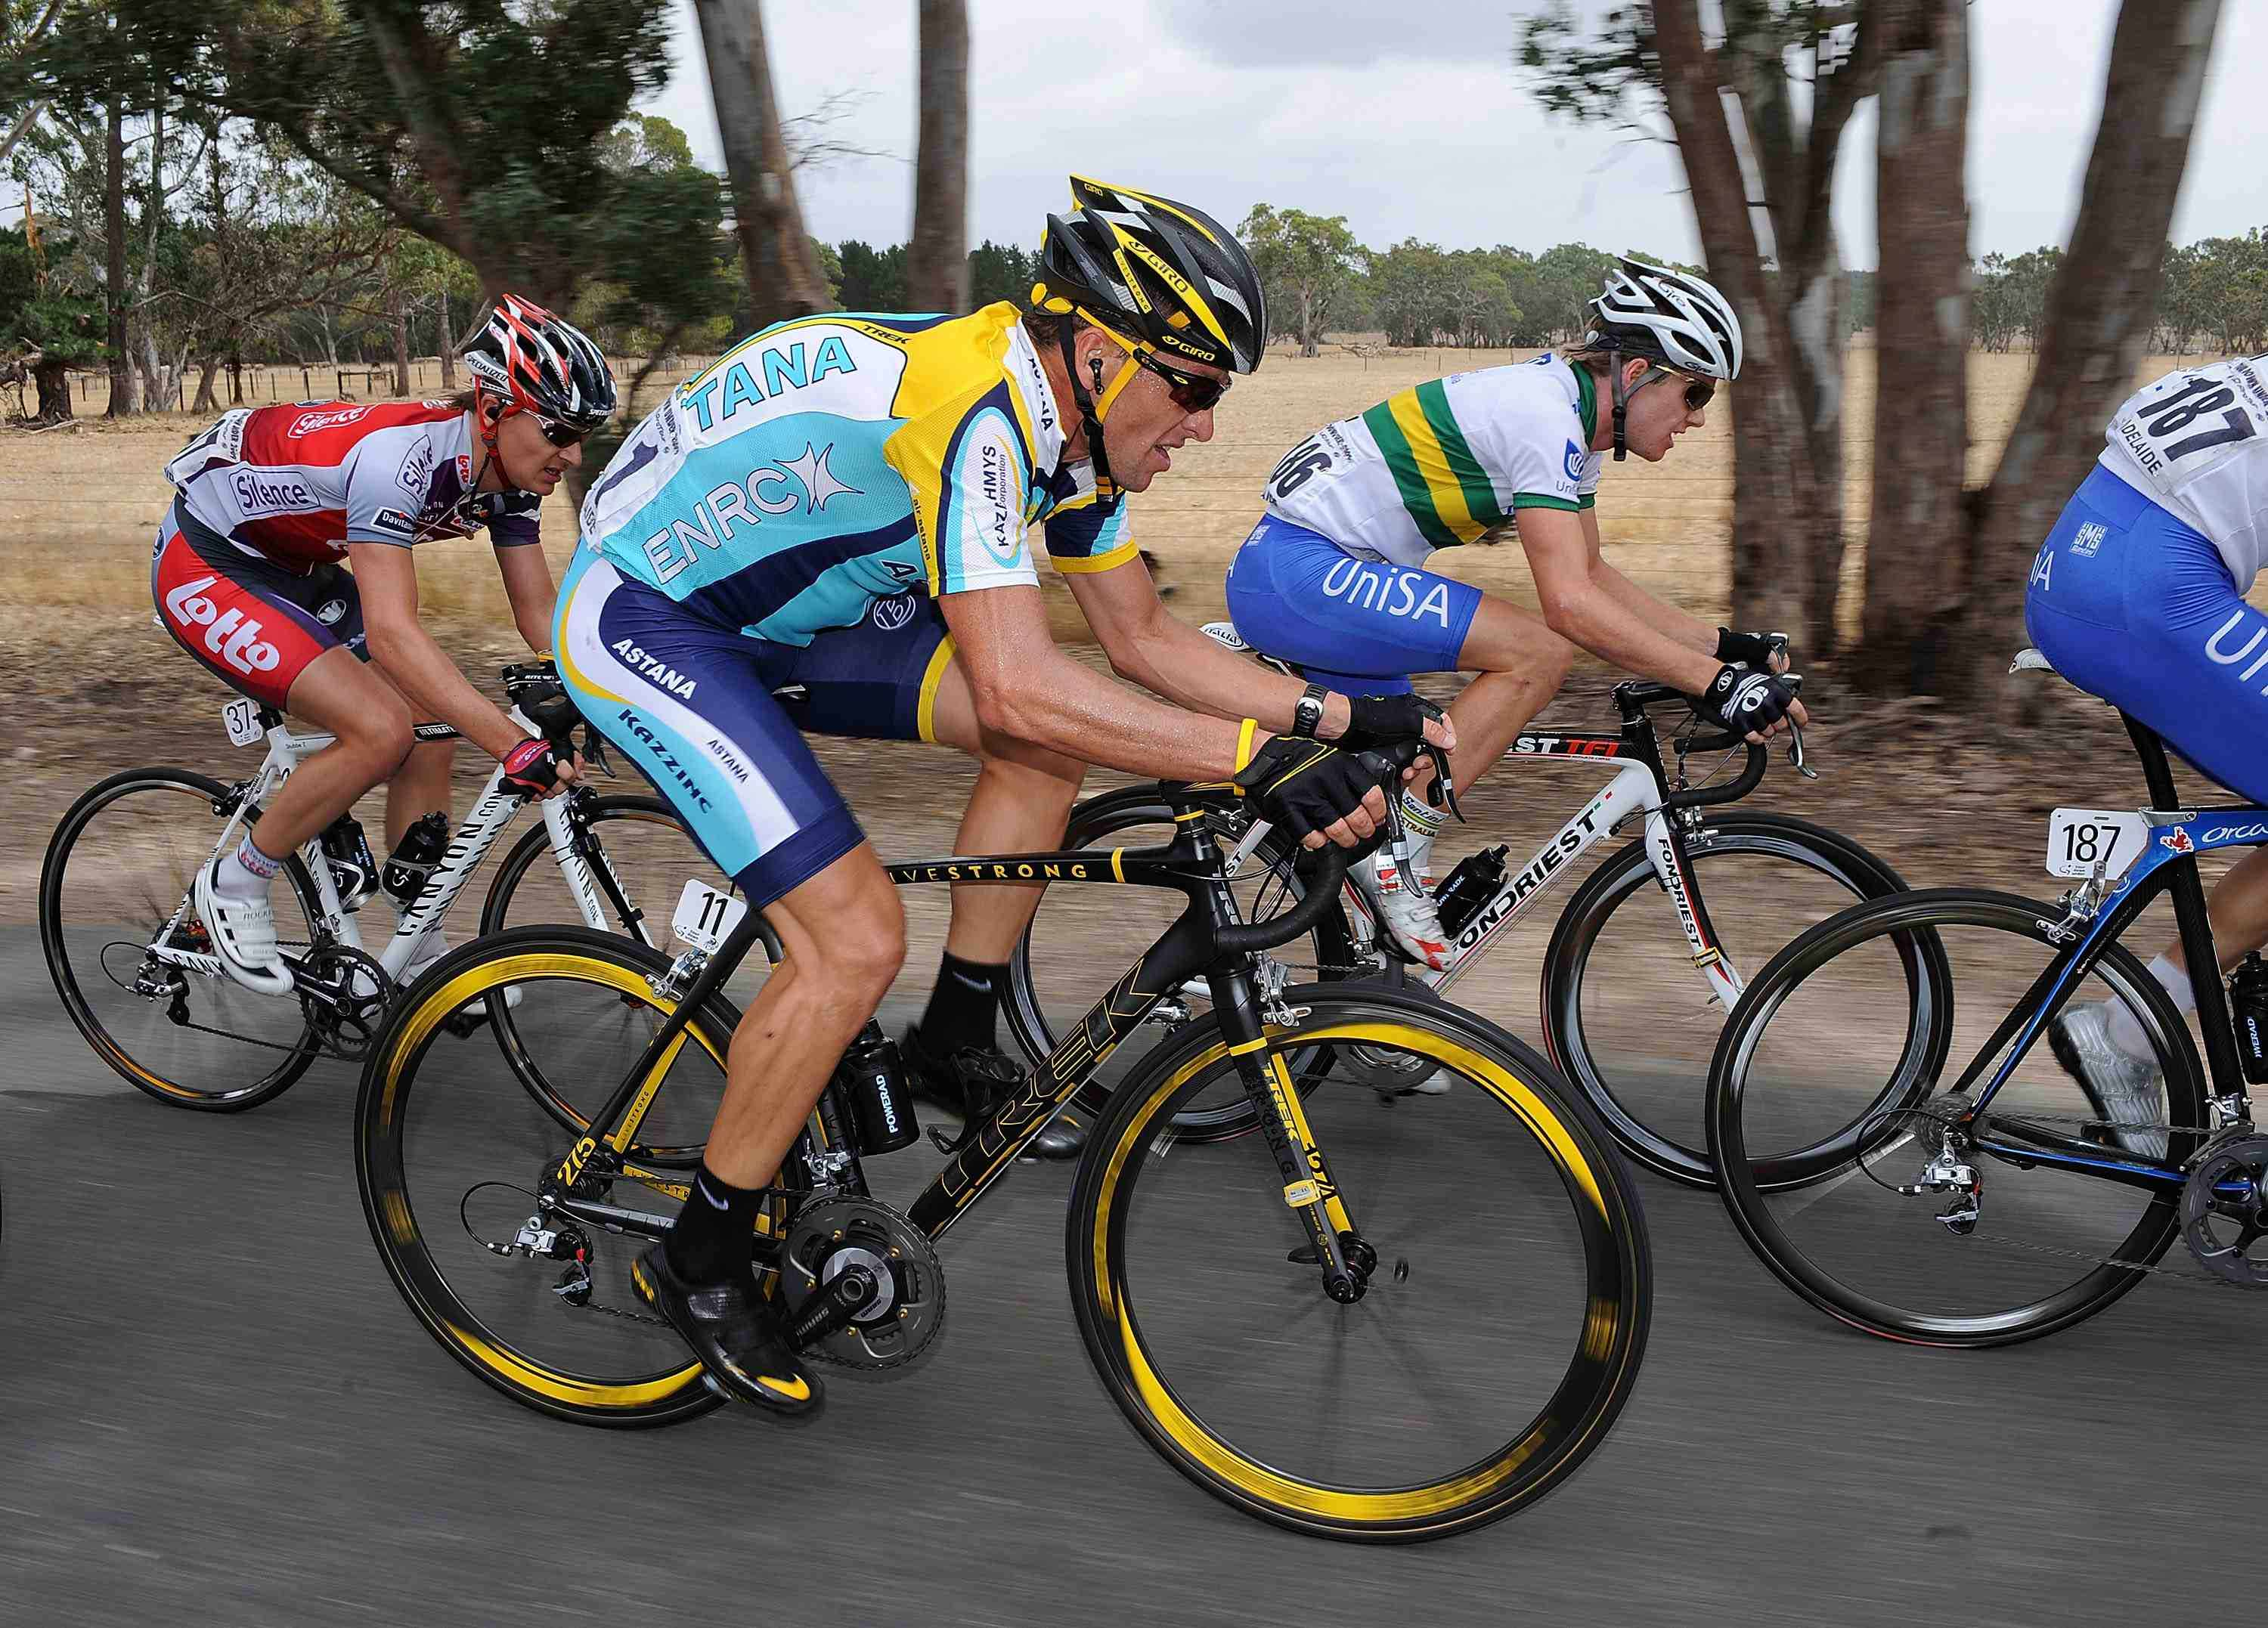 Armstrong racing the 2009 Tour Down Under on January 22.